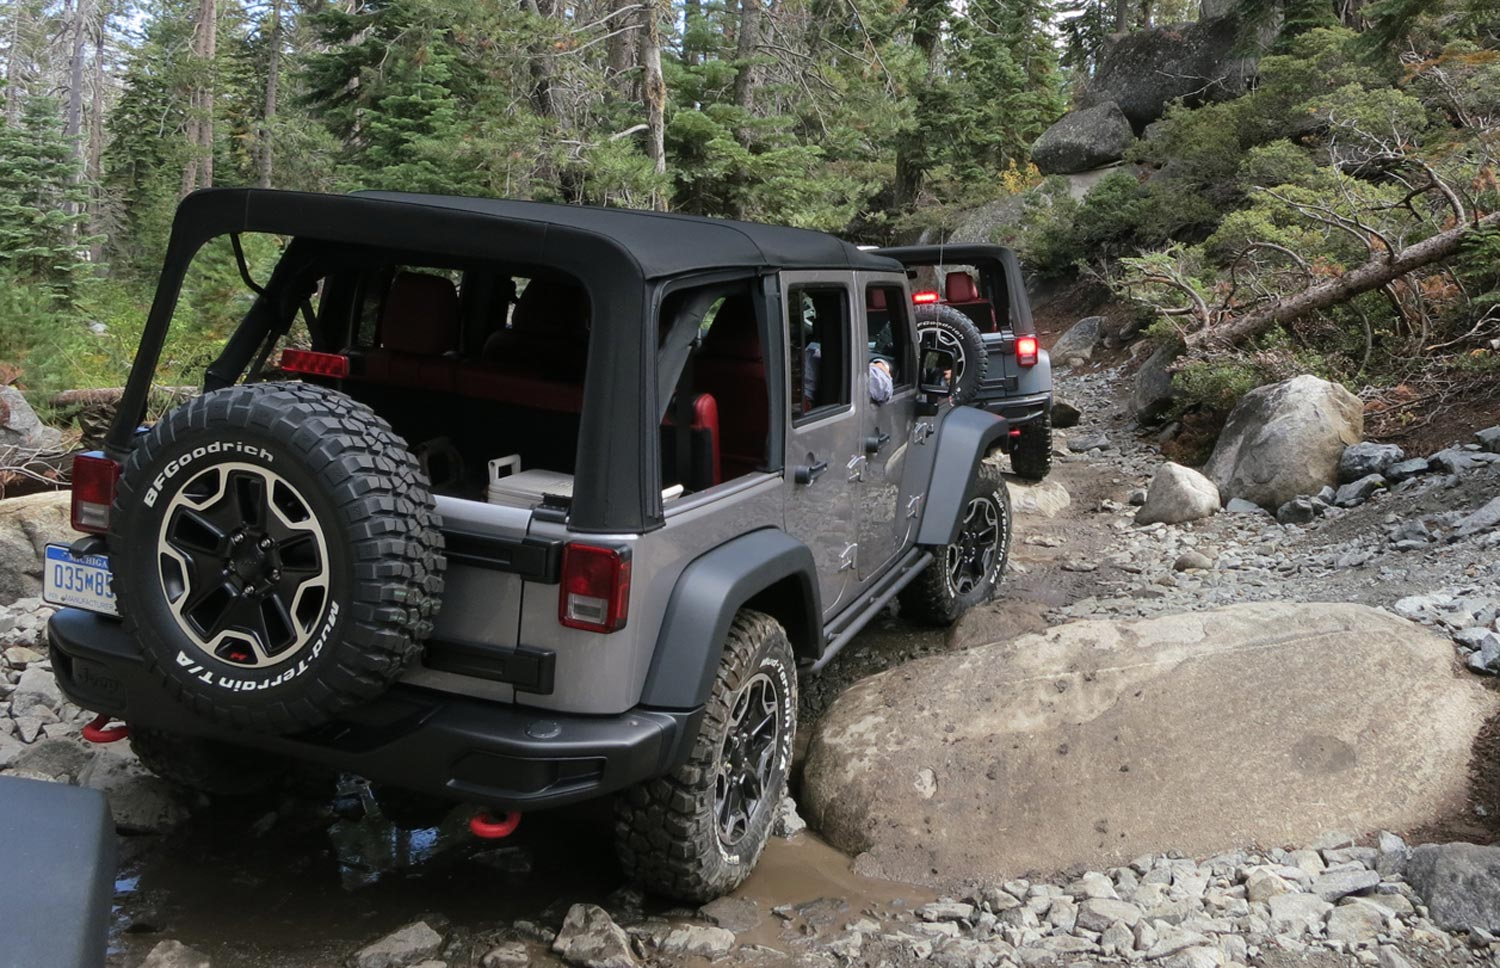 2013 Jeep Wrangler Rubicon 10th Anniversary Edition On Rubicon Trail1